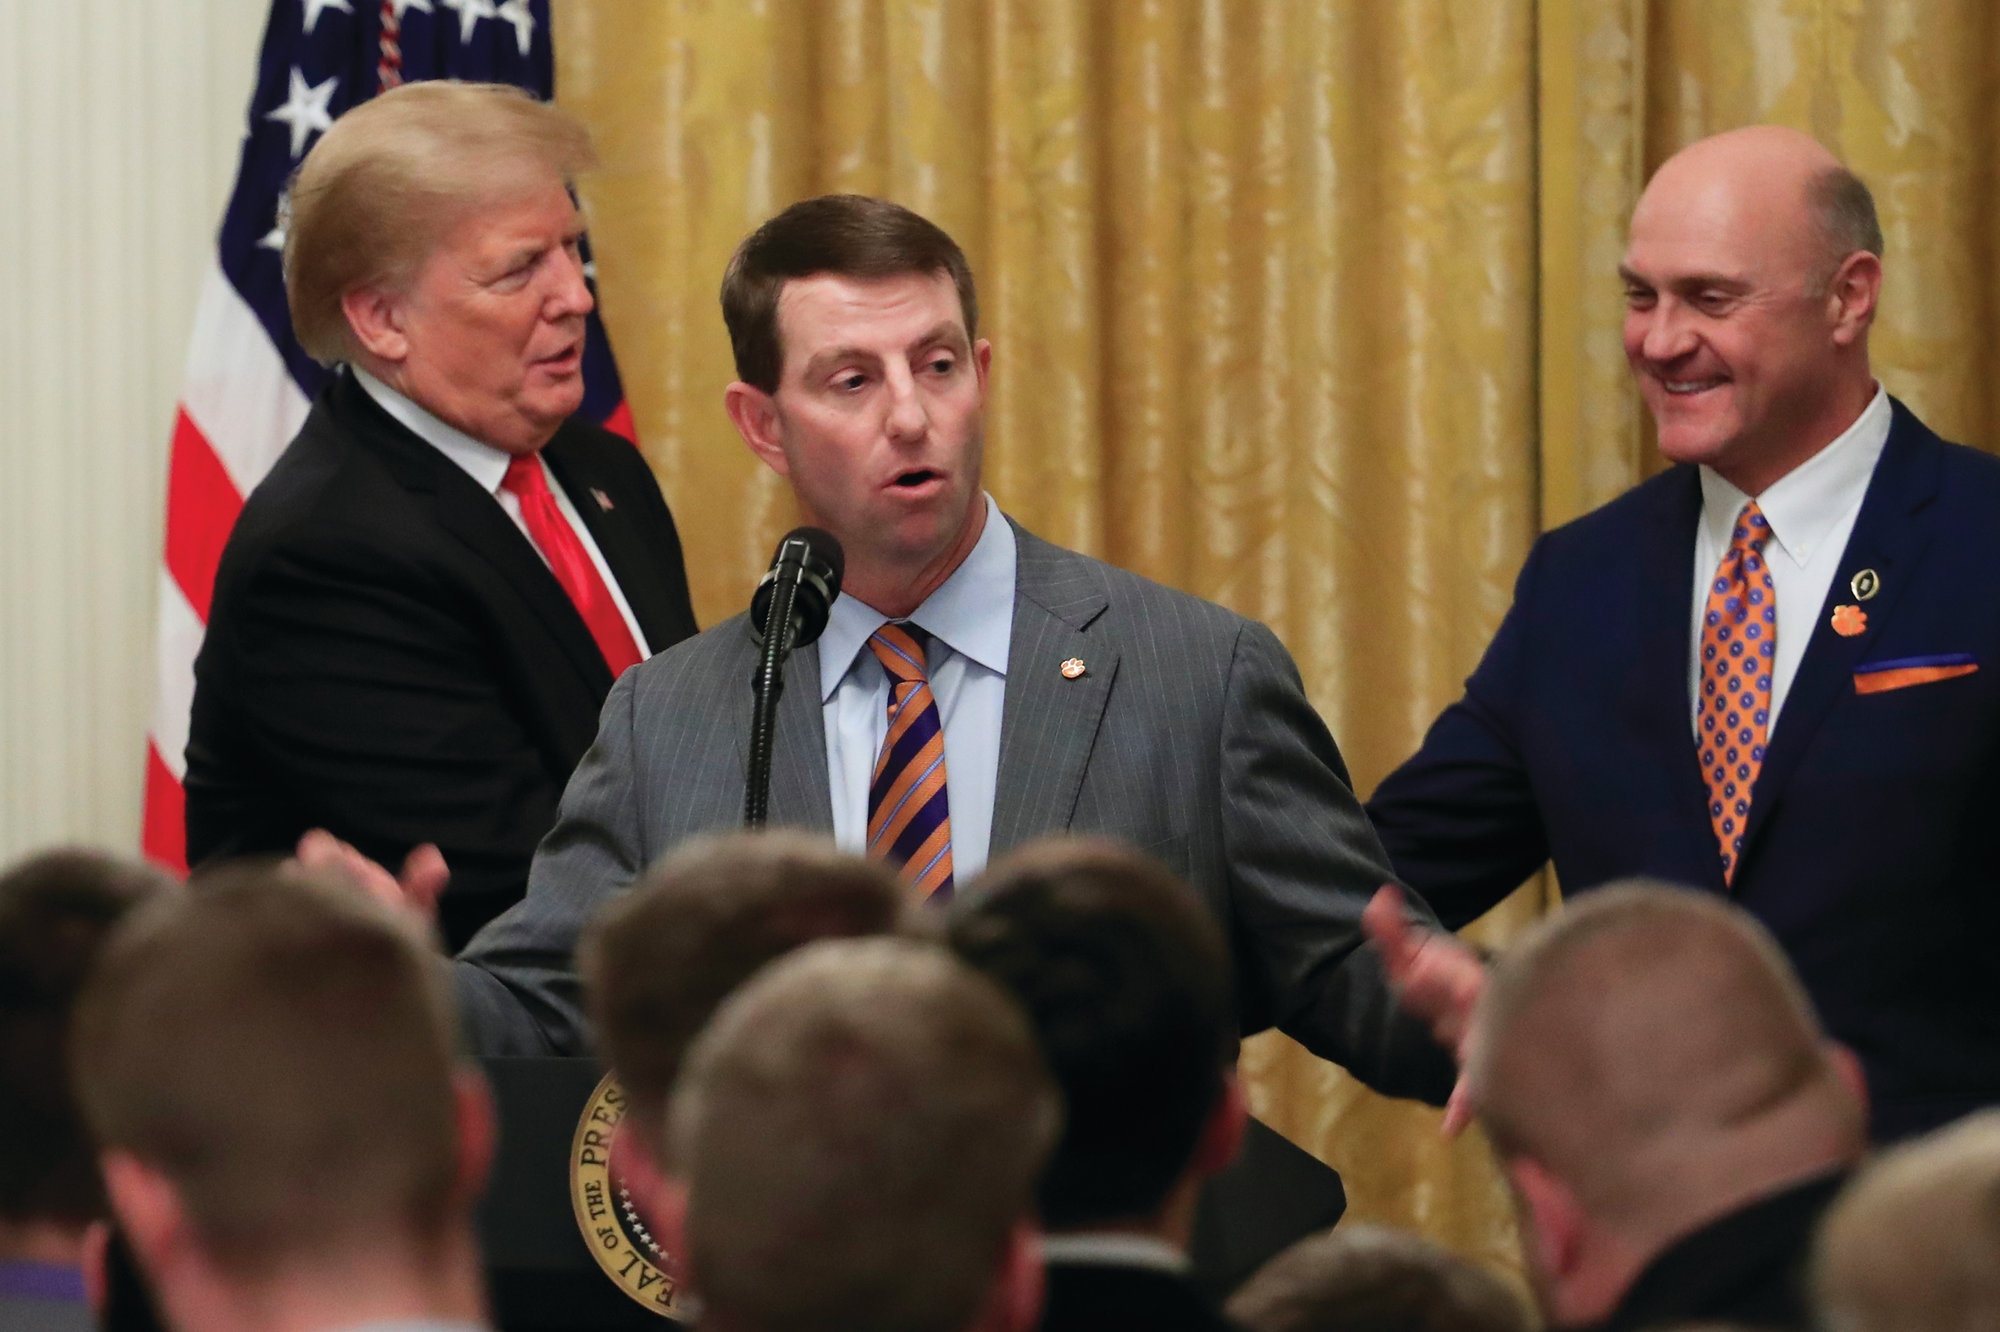 THE ASSOCIATED PRESS Clemson football head coach Dabo Swinney, center, speaks as President Donald Trump shakes hands with Clemson President James Clements during a ceremony at the White House in Washington on Monday to honor the Tigers' national championship victory.